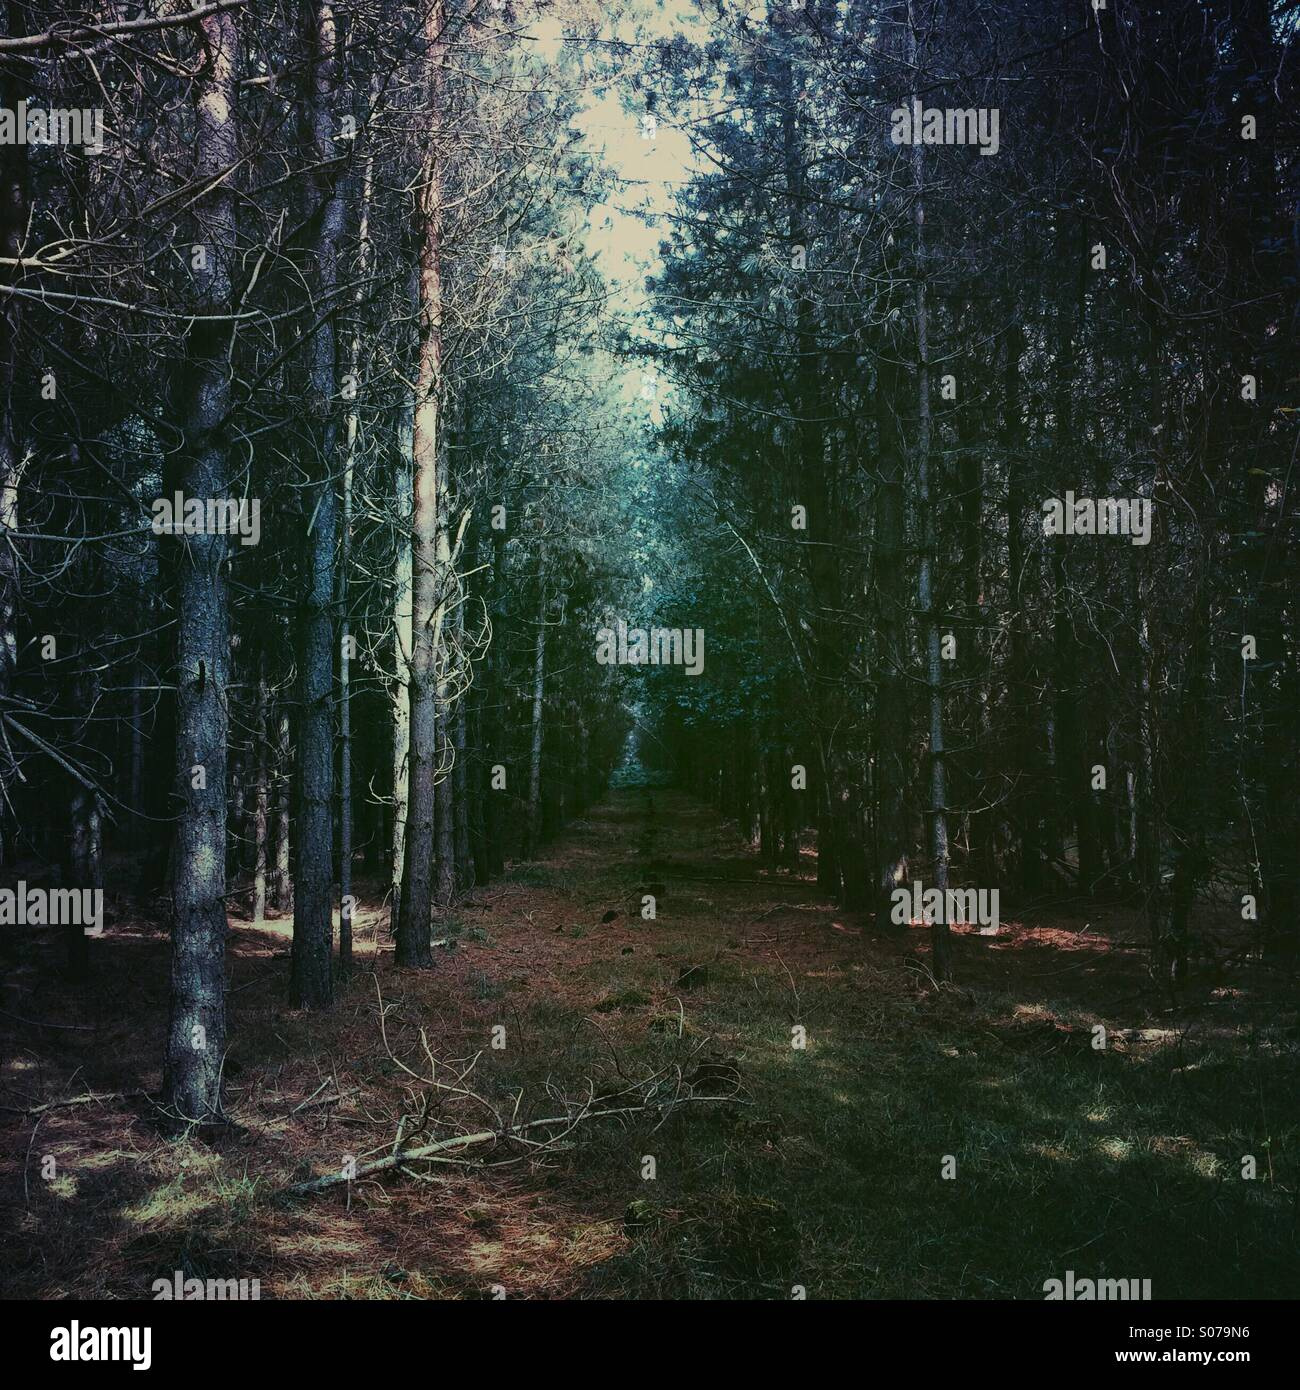 Dark forest with light in the distance - Stock Image